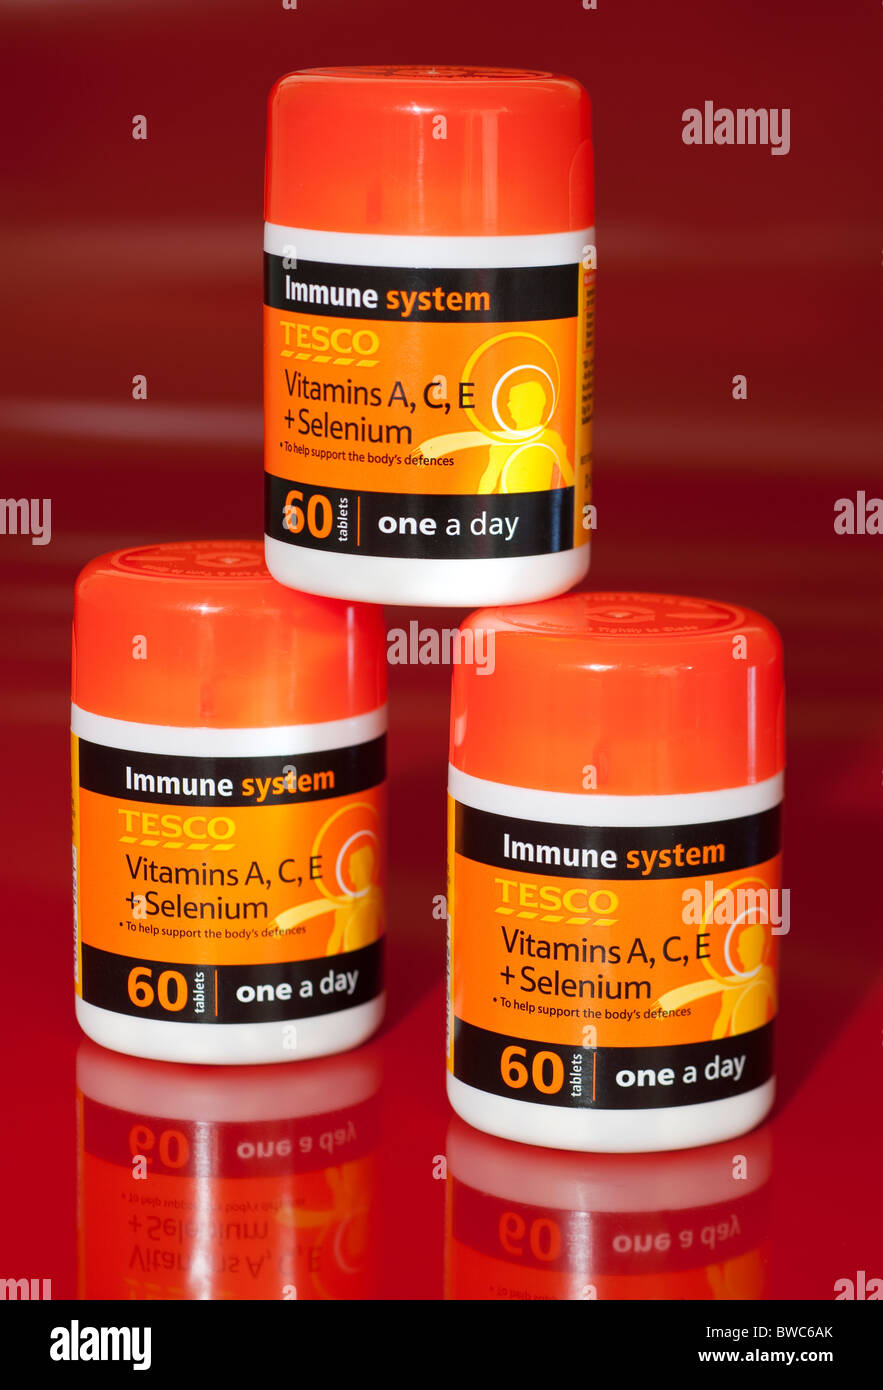 Three 60 tablet tubs of Tesco one a day vitamins A C E and Selenium - Stock Image